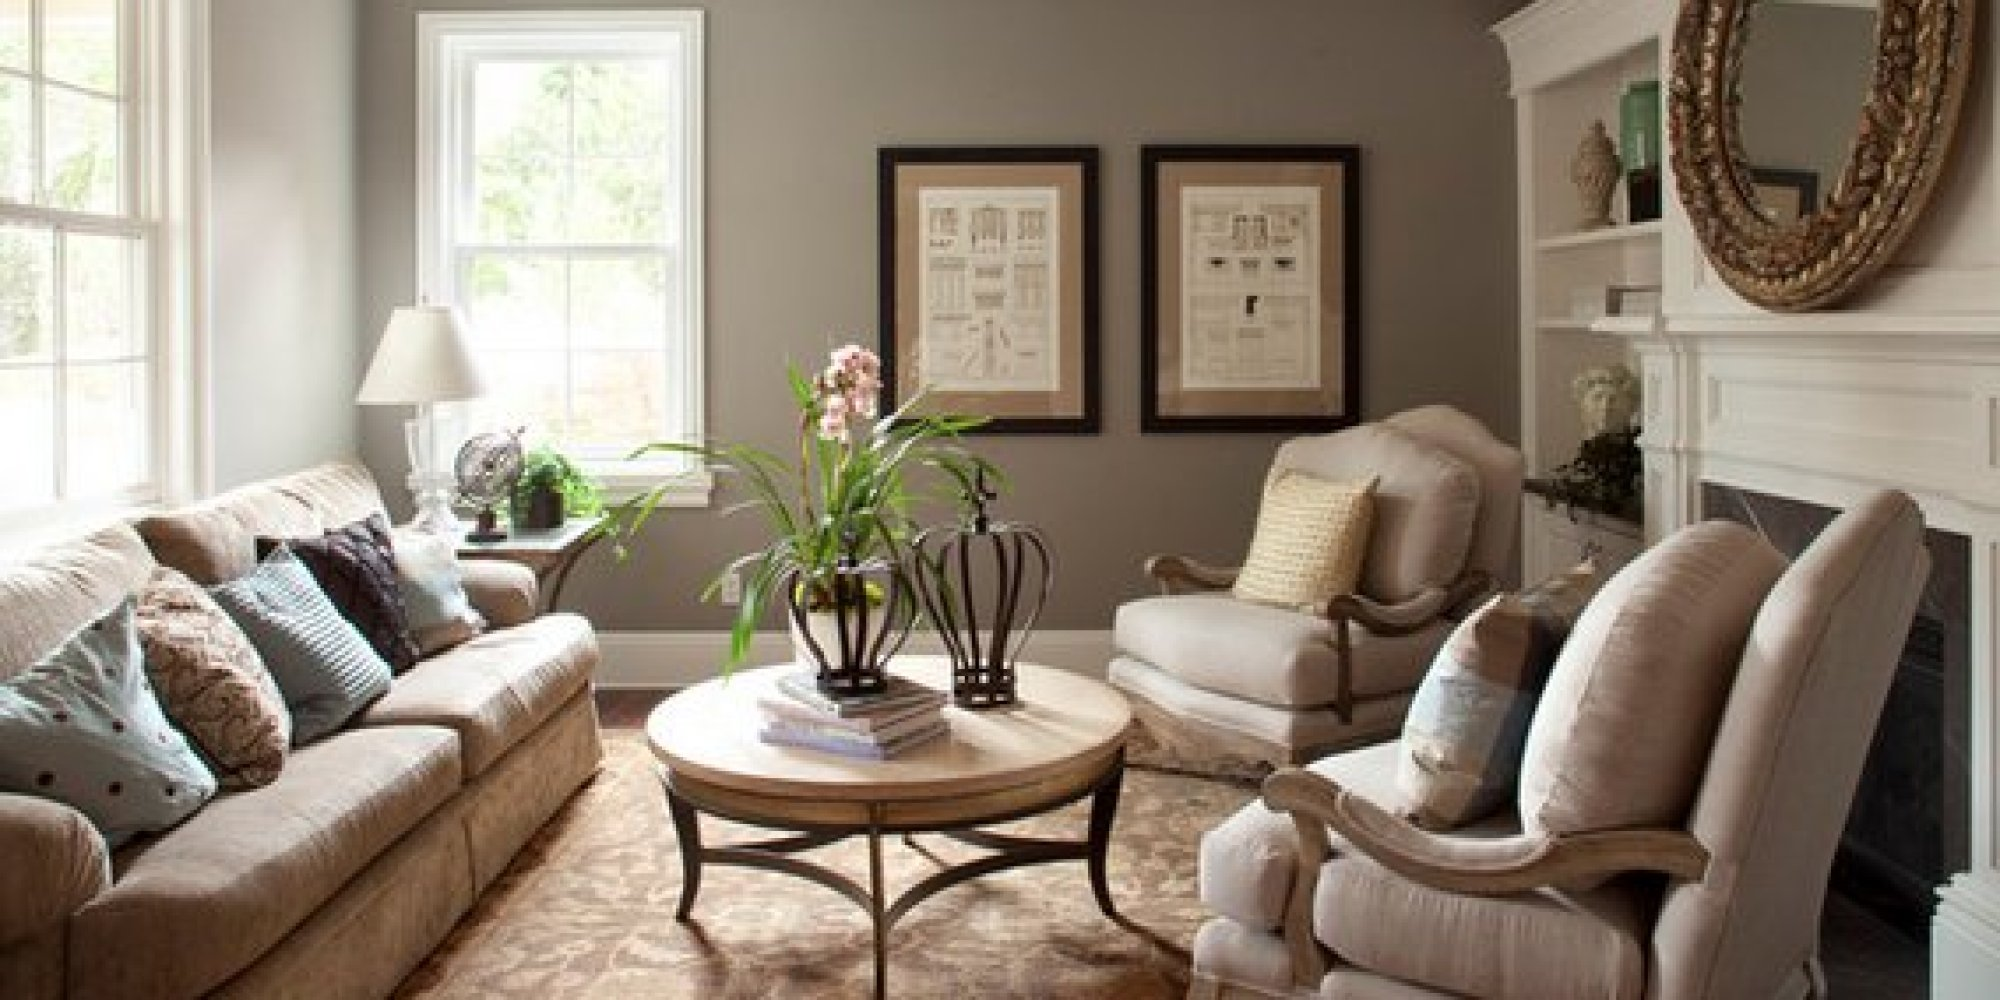 The 6 Best Paint Colors That Work In Any Home | HuffPost on Room Painting id=24632